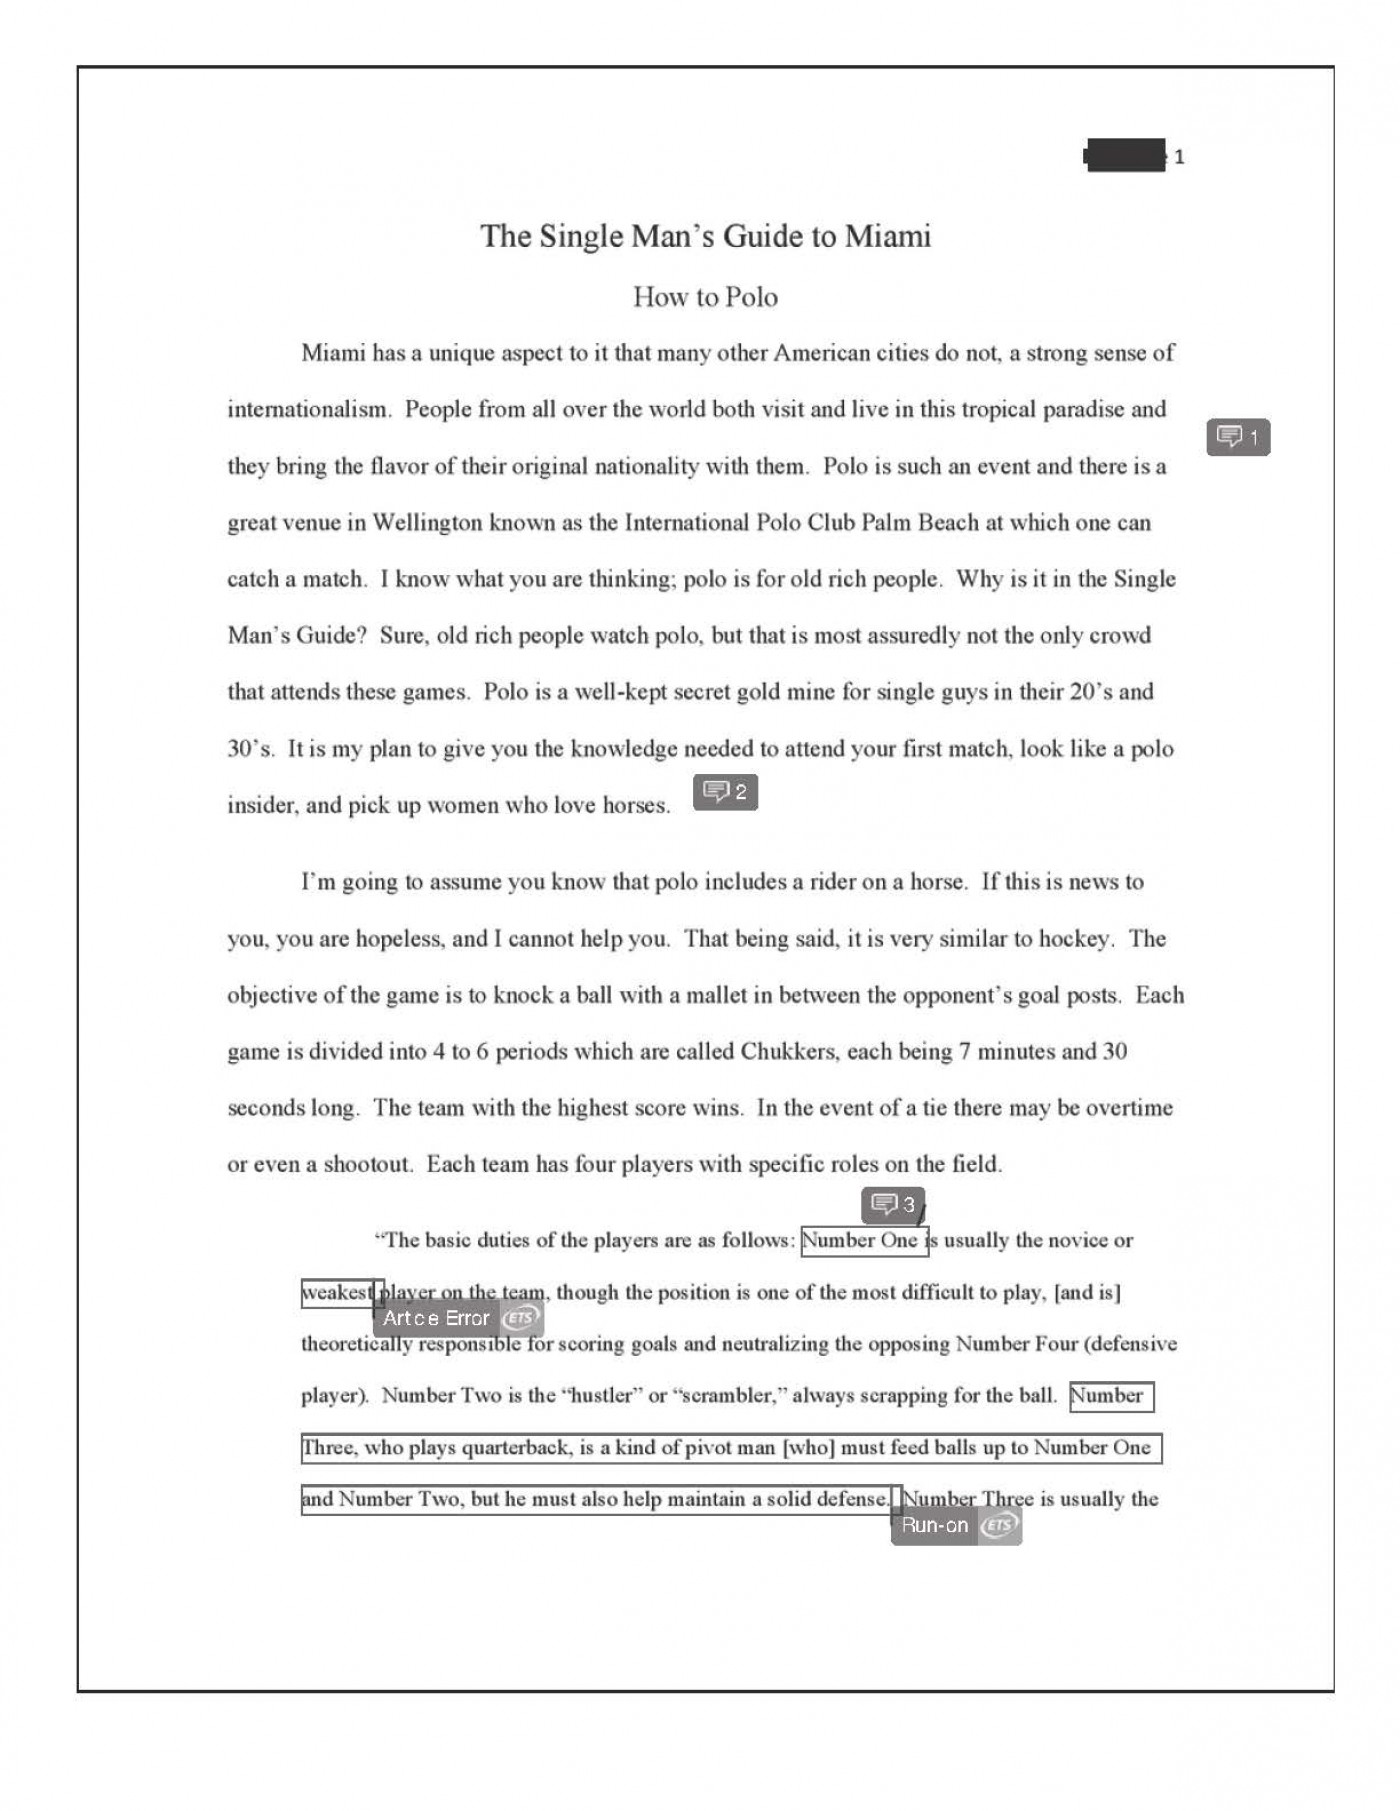 005 Informative Essay Topics Essays Sample Funny Argumentative For Middle School Final How To Polo Redacted P College Students Hilarious Good Remarkable 2018 Prompts High Prompt 4th Grade 1400